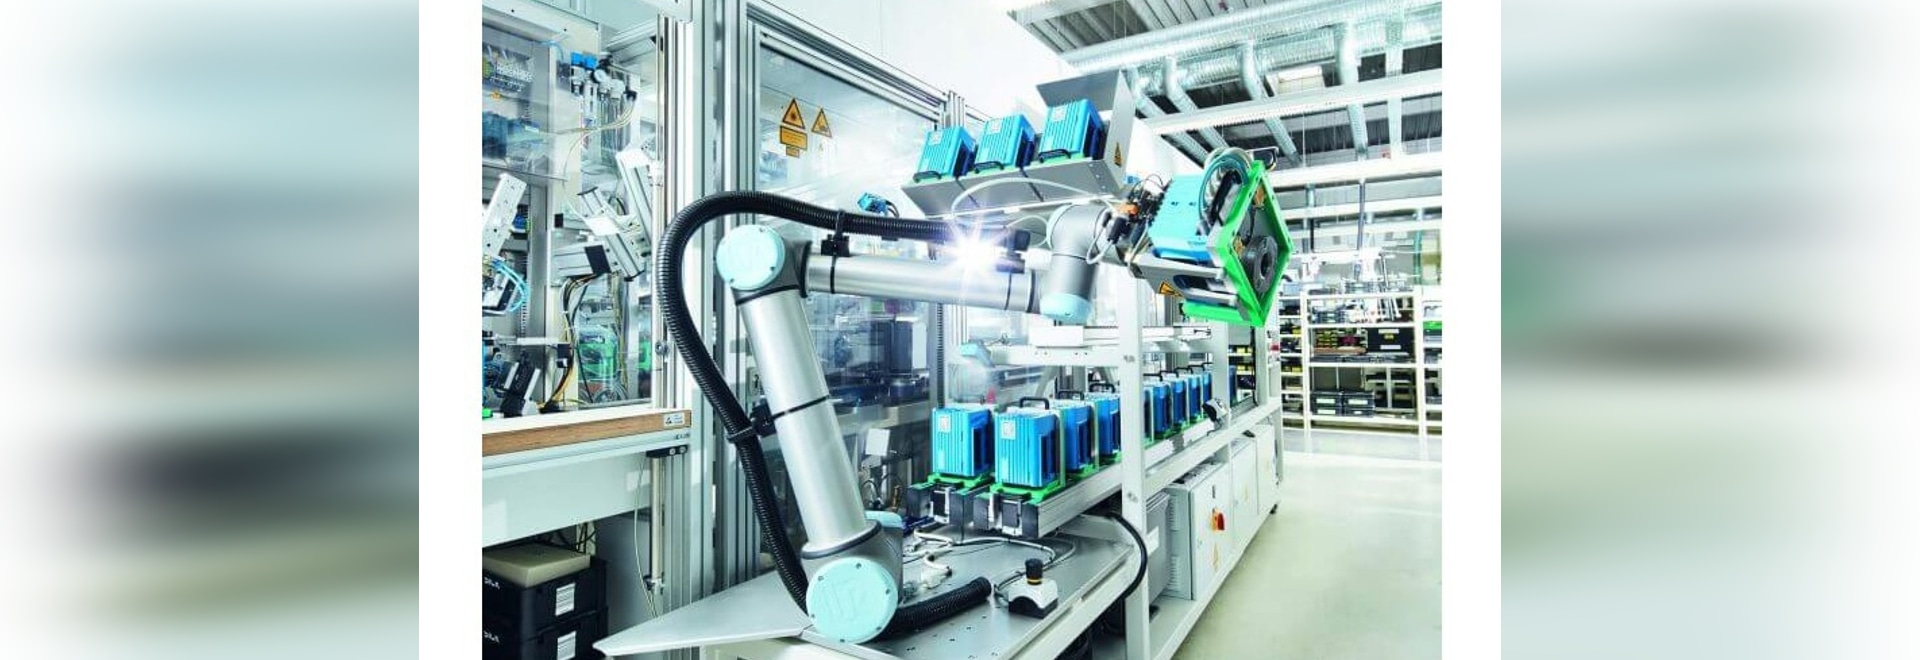 Improved safety for workers near robots